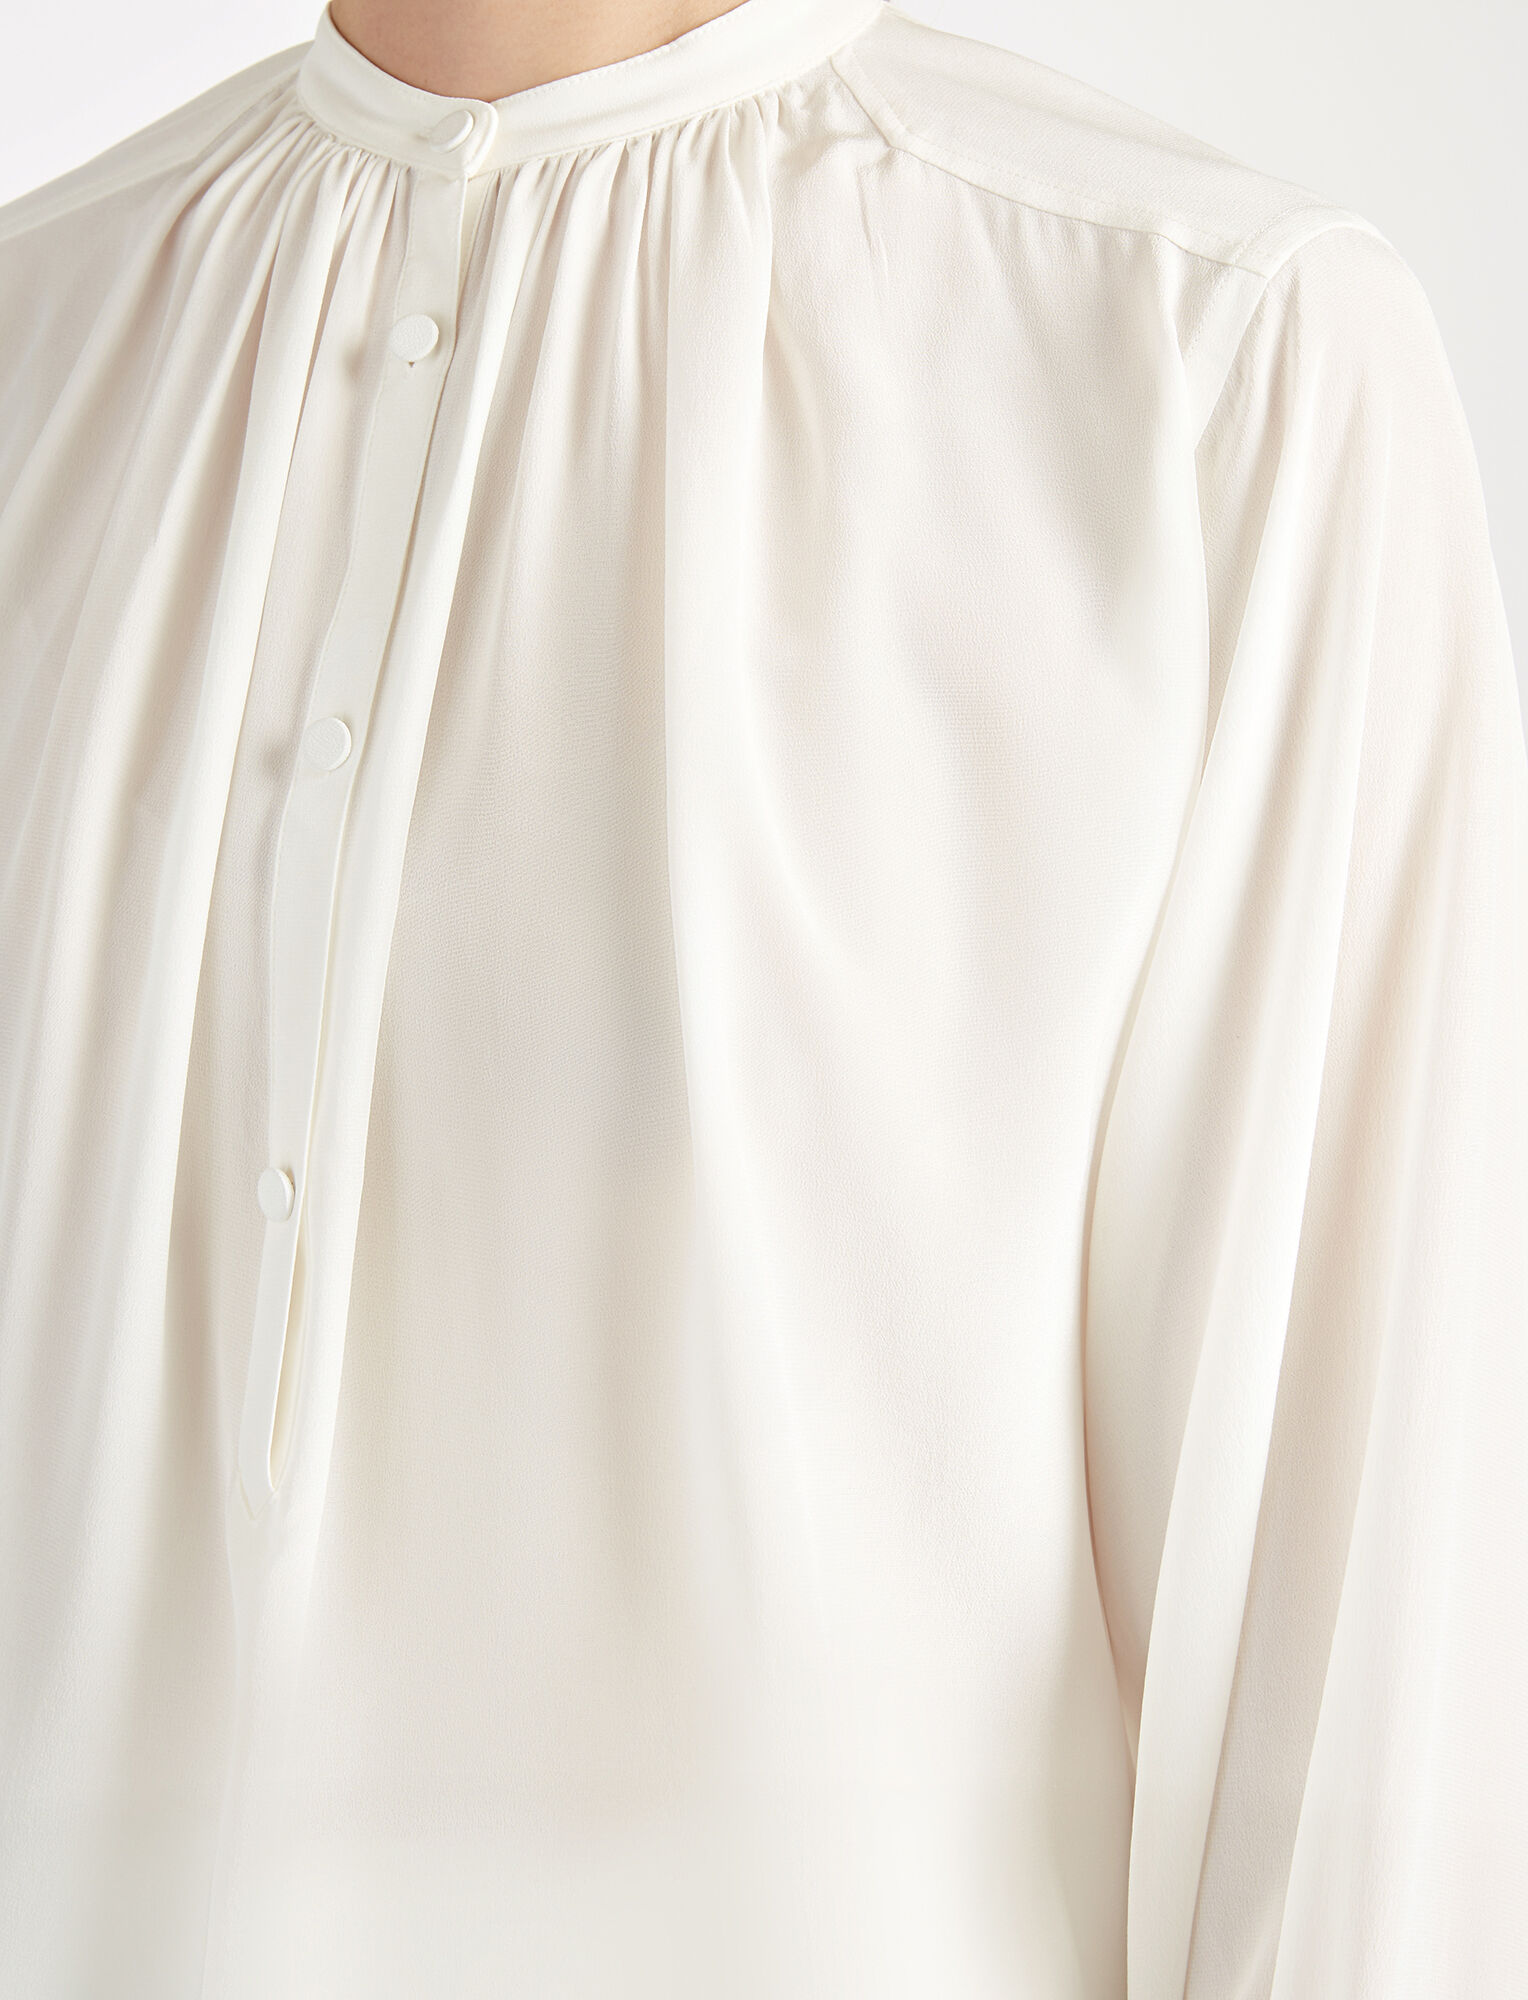 Joseph, Crepe de Chine Vita Top, in OFF WHITE